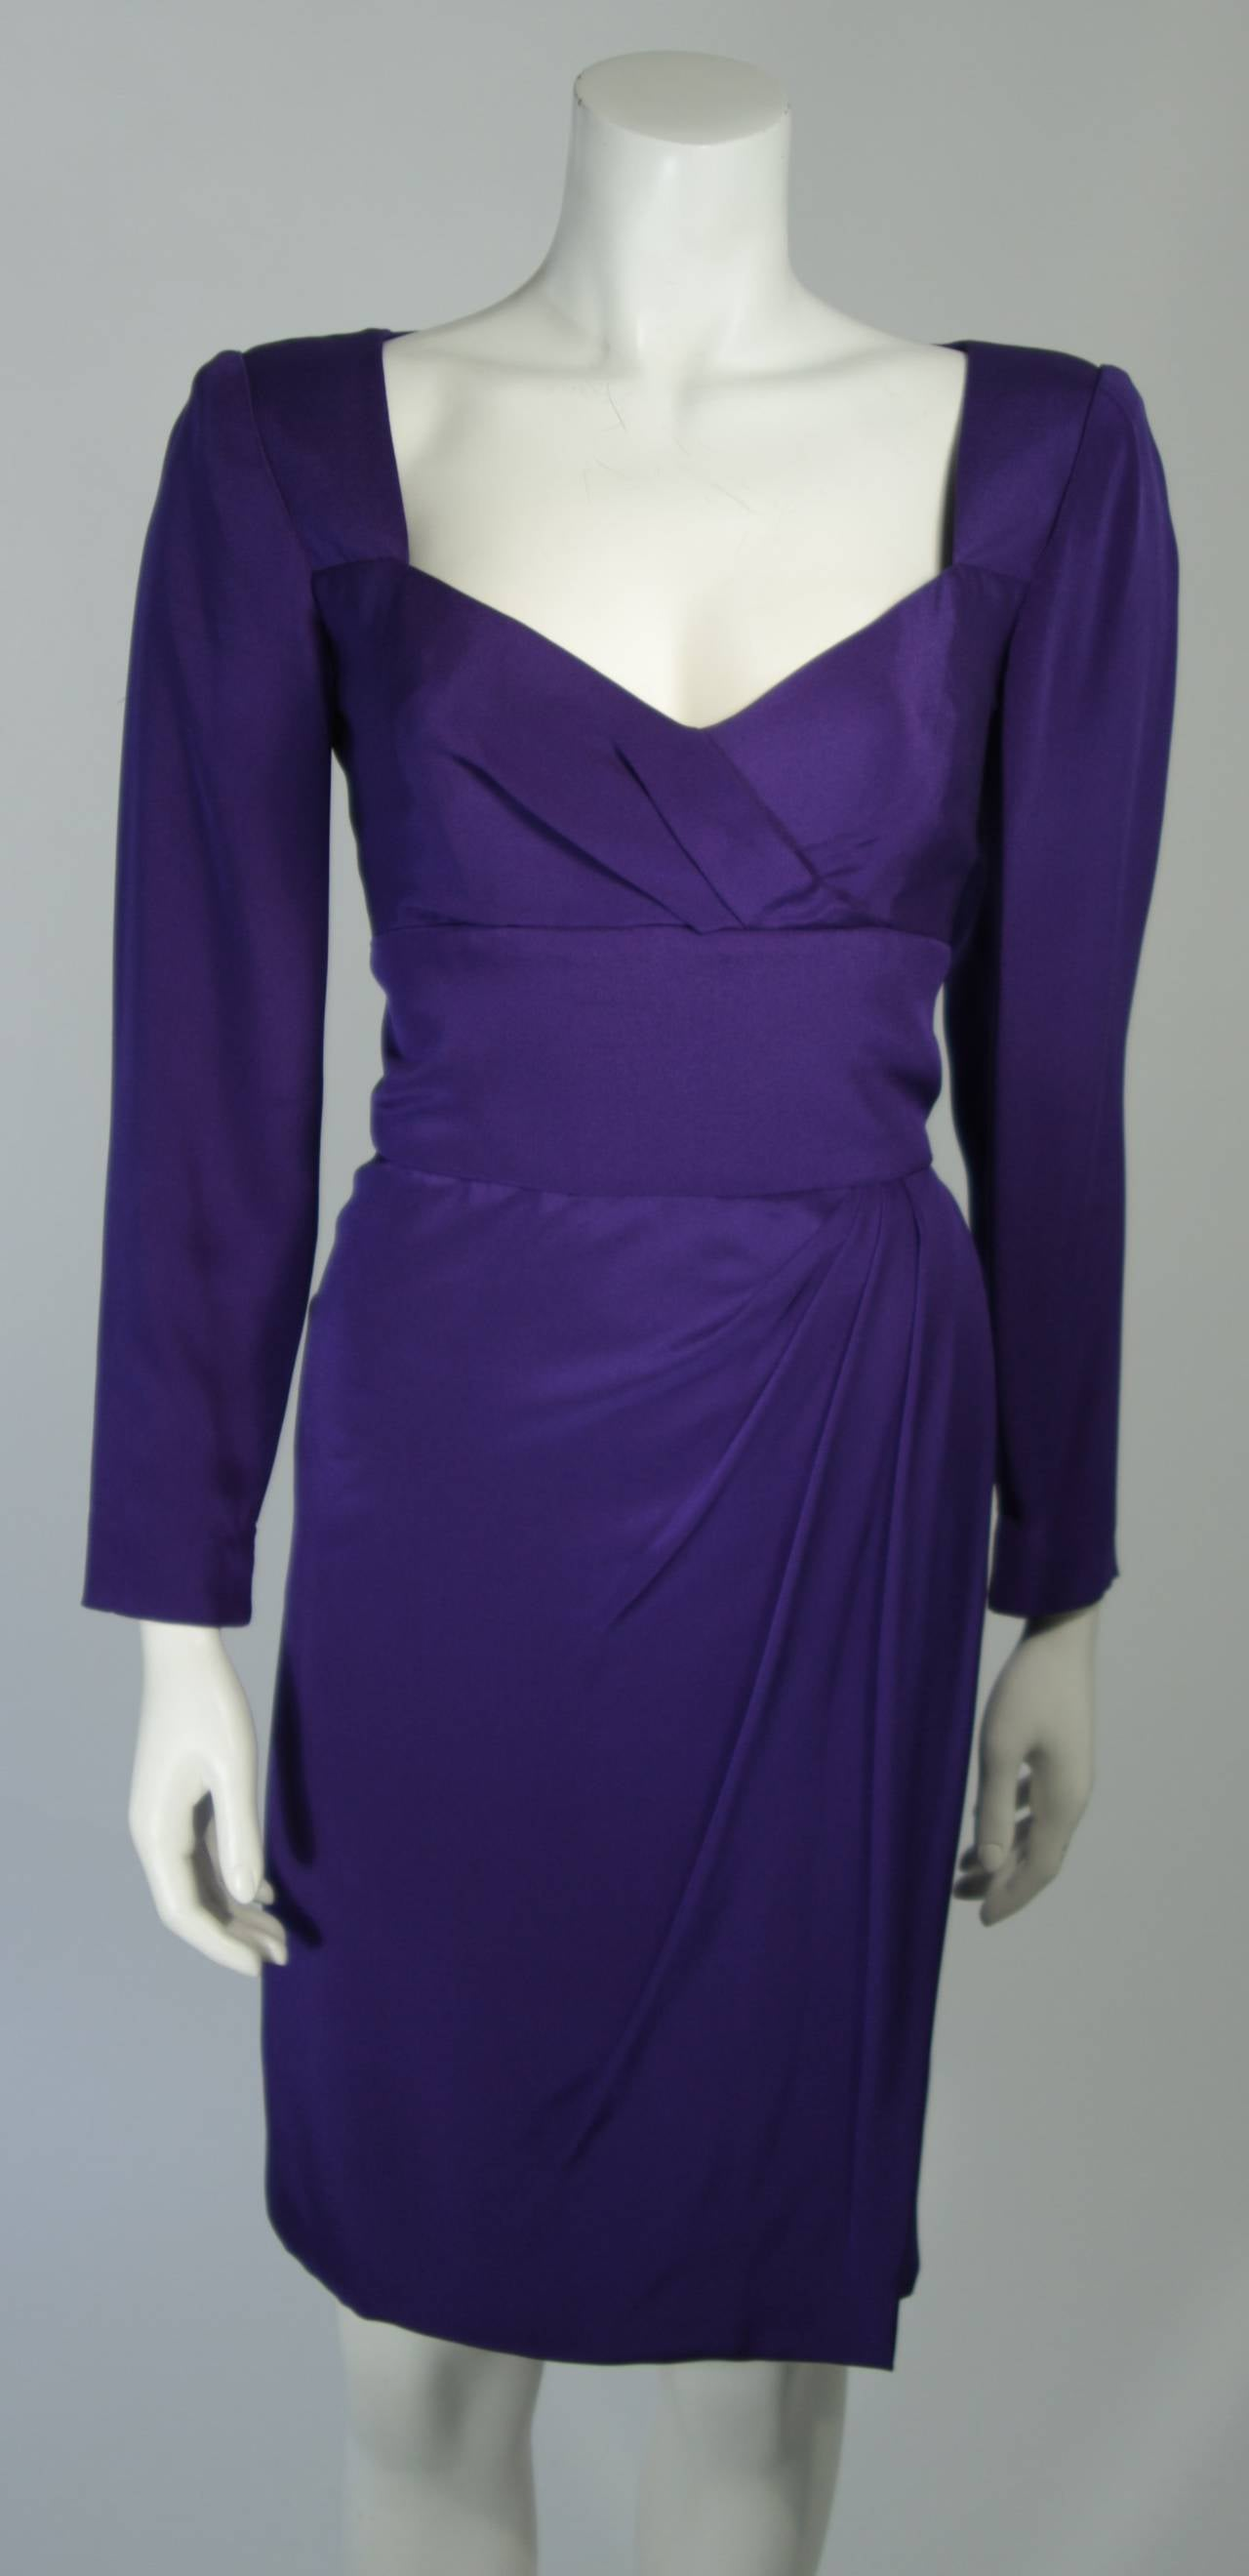 Travilla Purple Silk Long Sleeve Cocktail Dress with Draping Size 8 In Excellent Condition For Sale In Los Angeles, CA